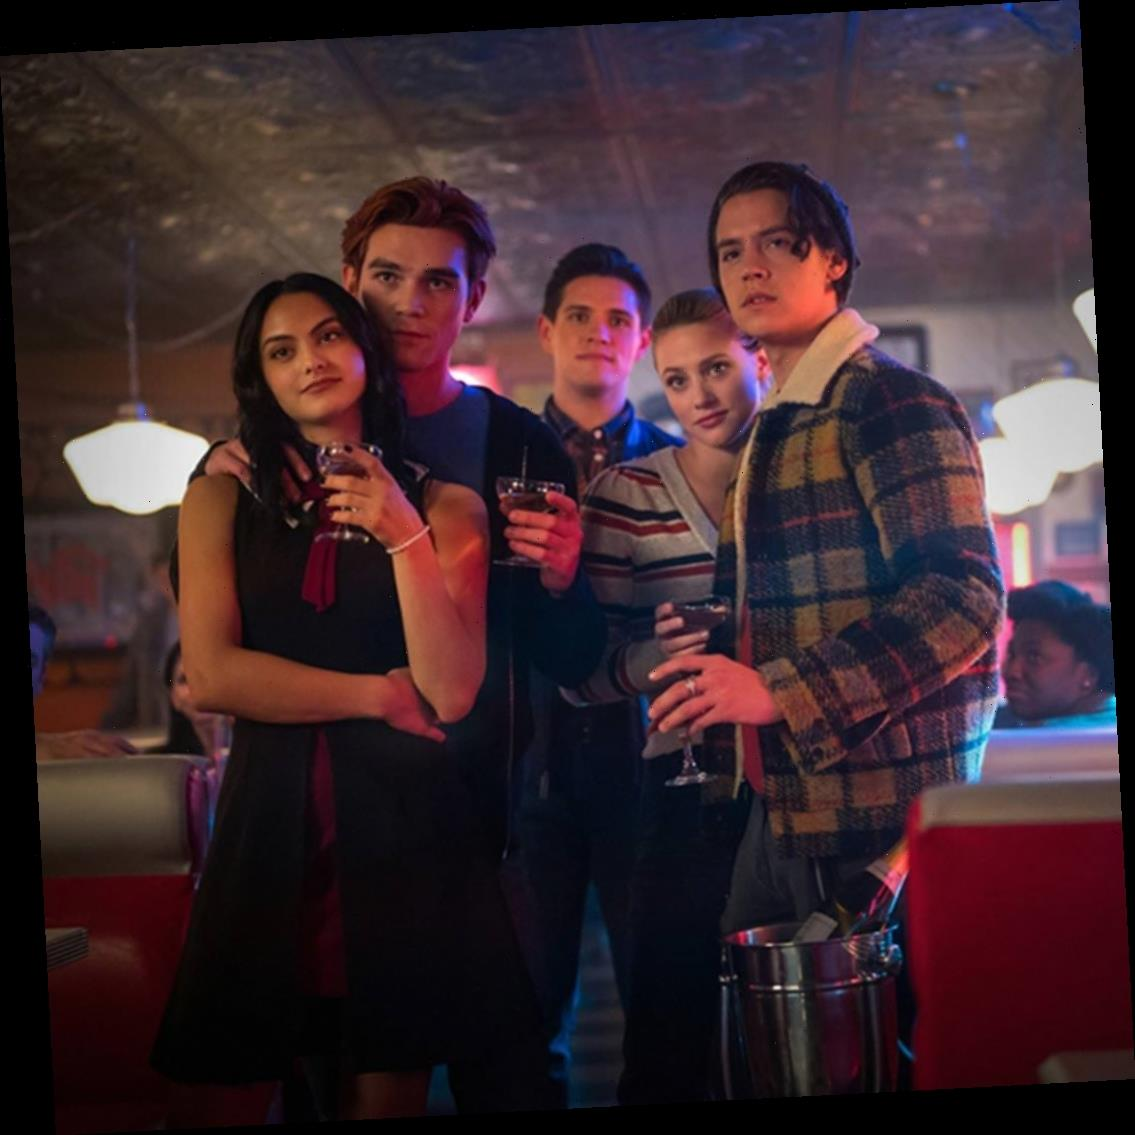 Is Archie Dying? The Riverdale Showrunner Might Have Just Tweeted Some Big Season 5 Clues